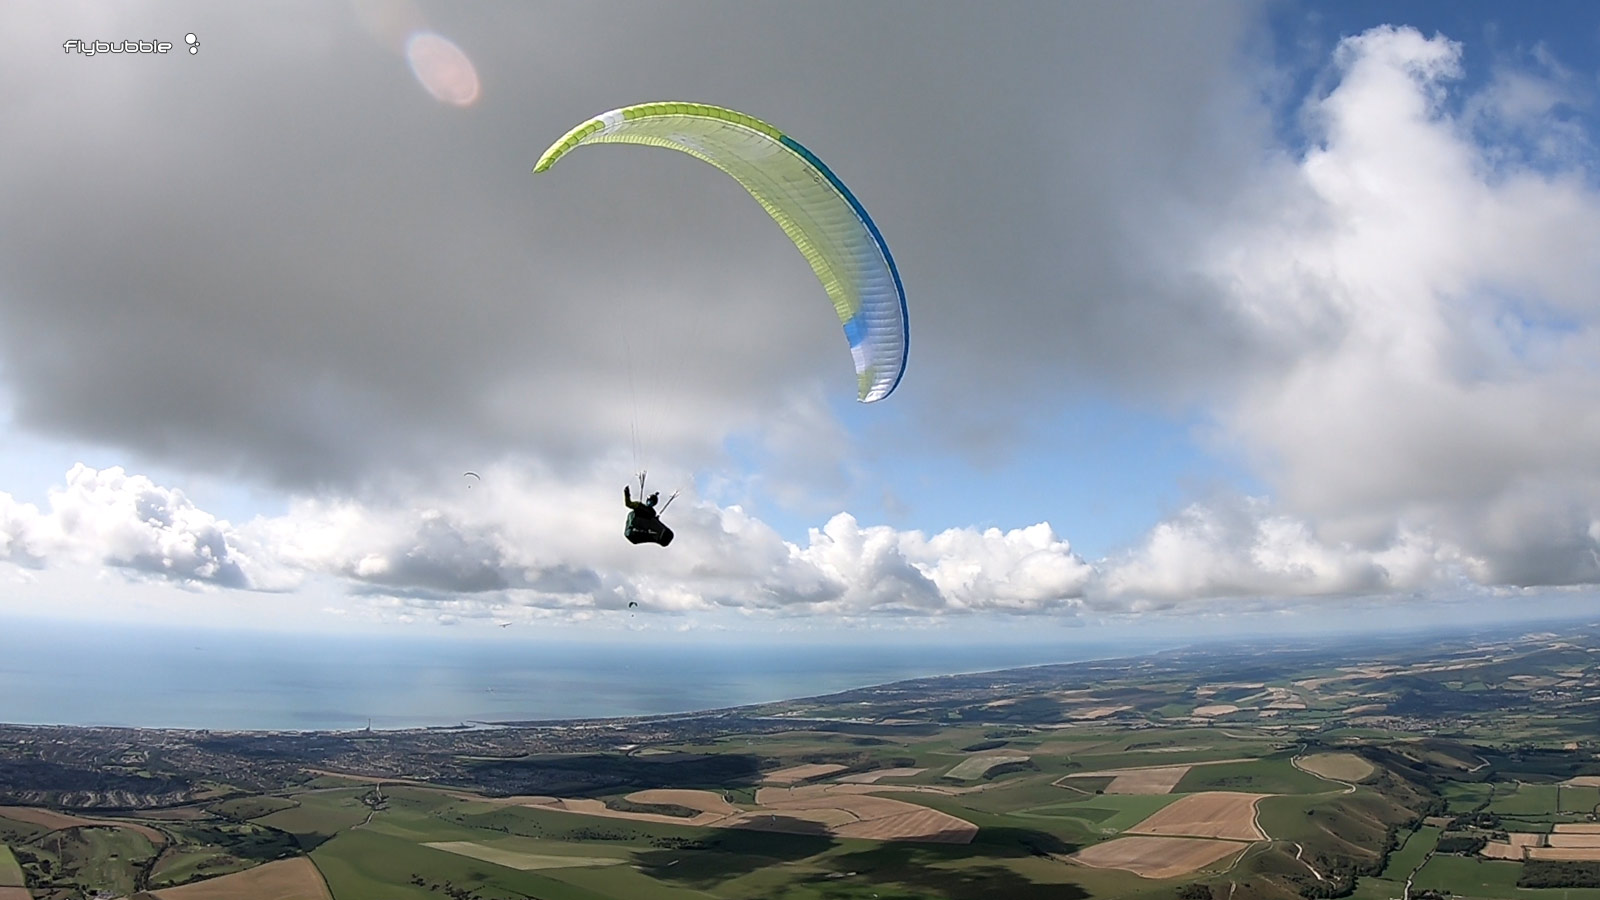 Supair STEP Paraglider Review - Flybubble Blog